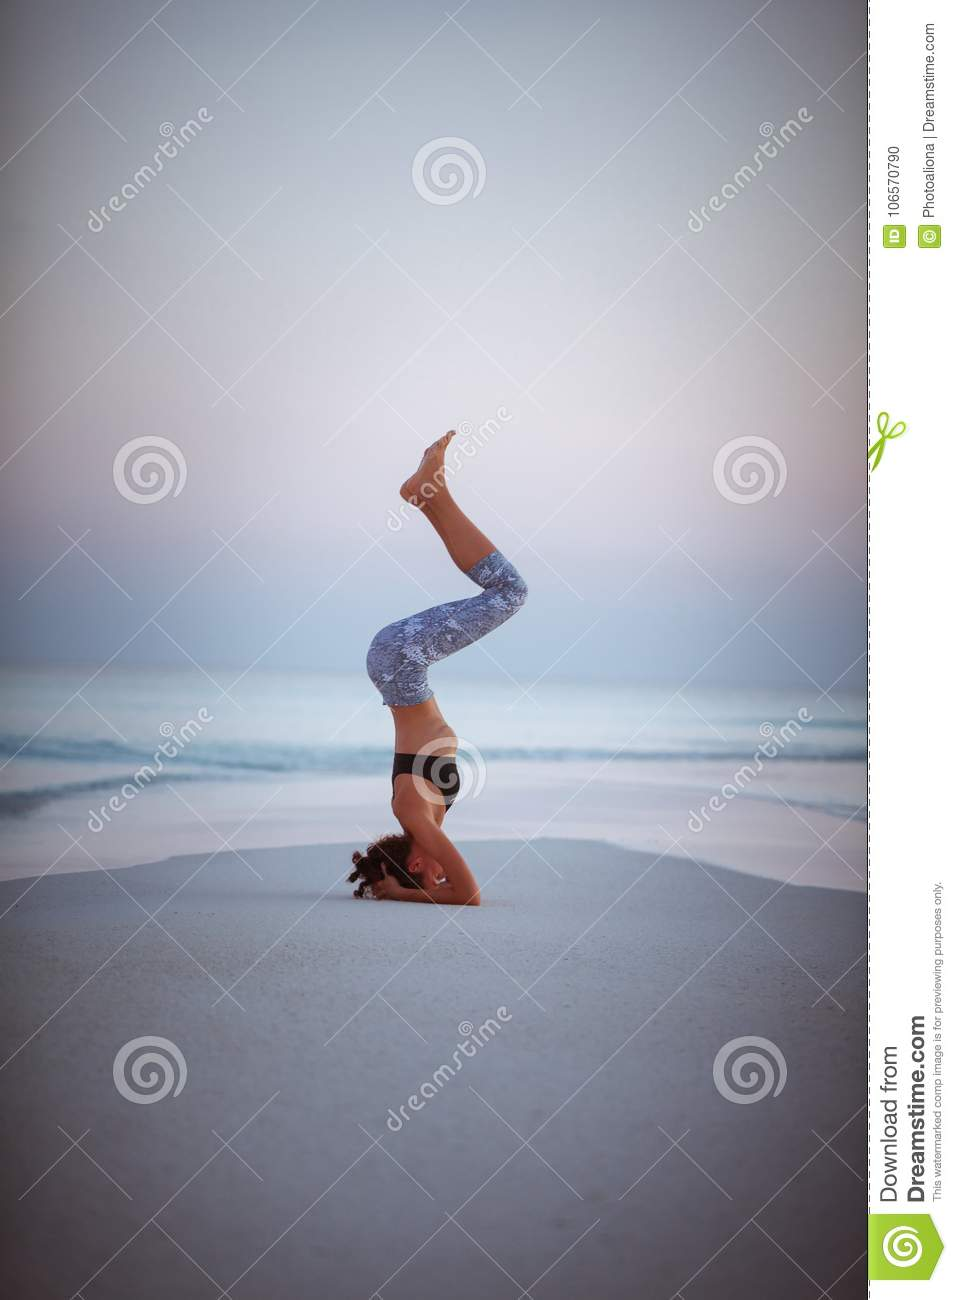 Summer yoga session on a beautiful golden beach of Maldives yoga tour, Salamba Sirsasana - supported headstand